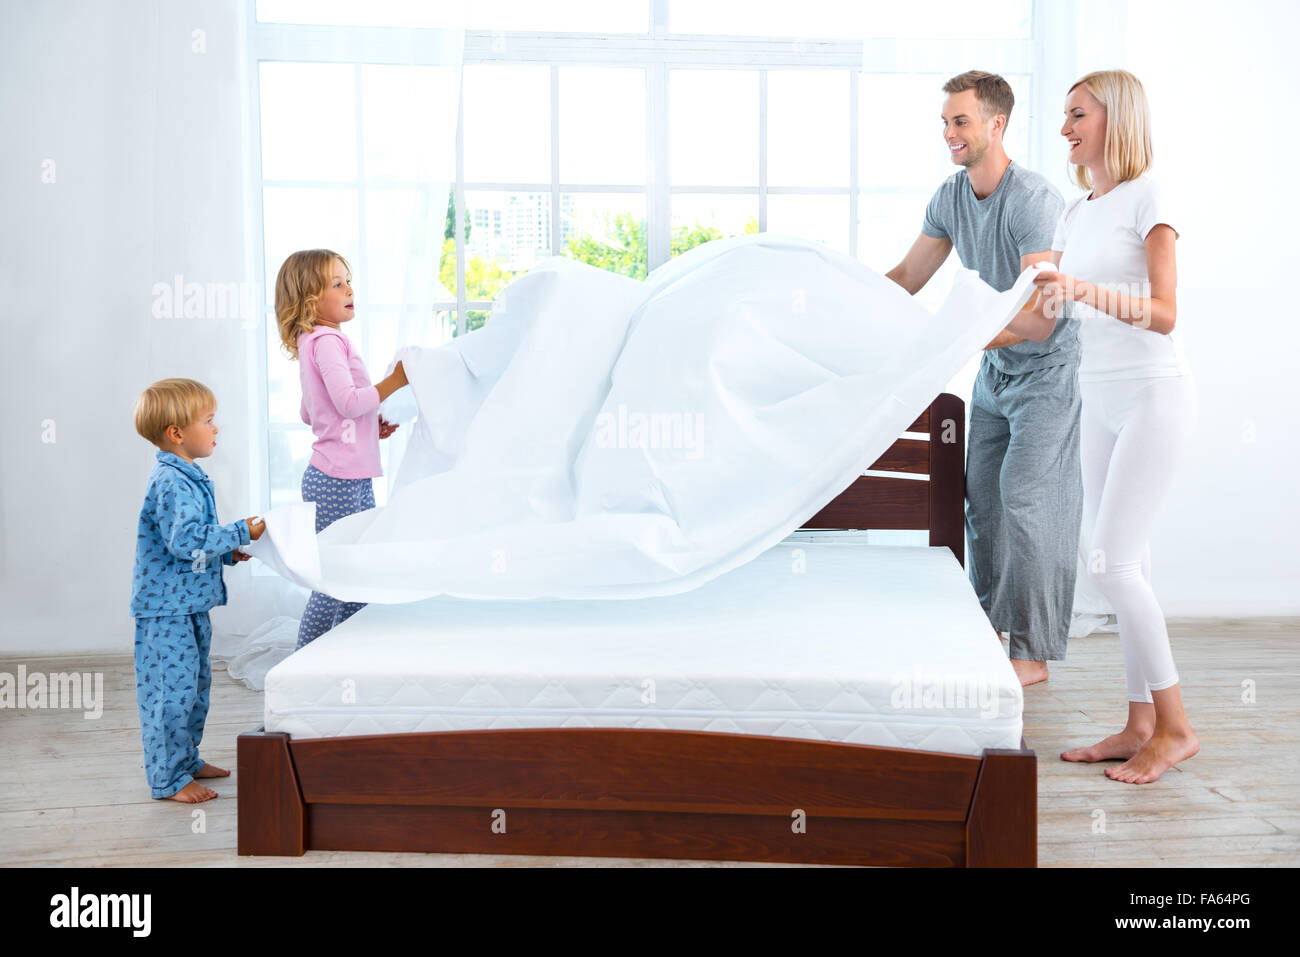 Young nice family making bed - Stock Image